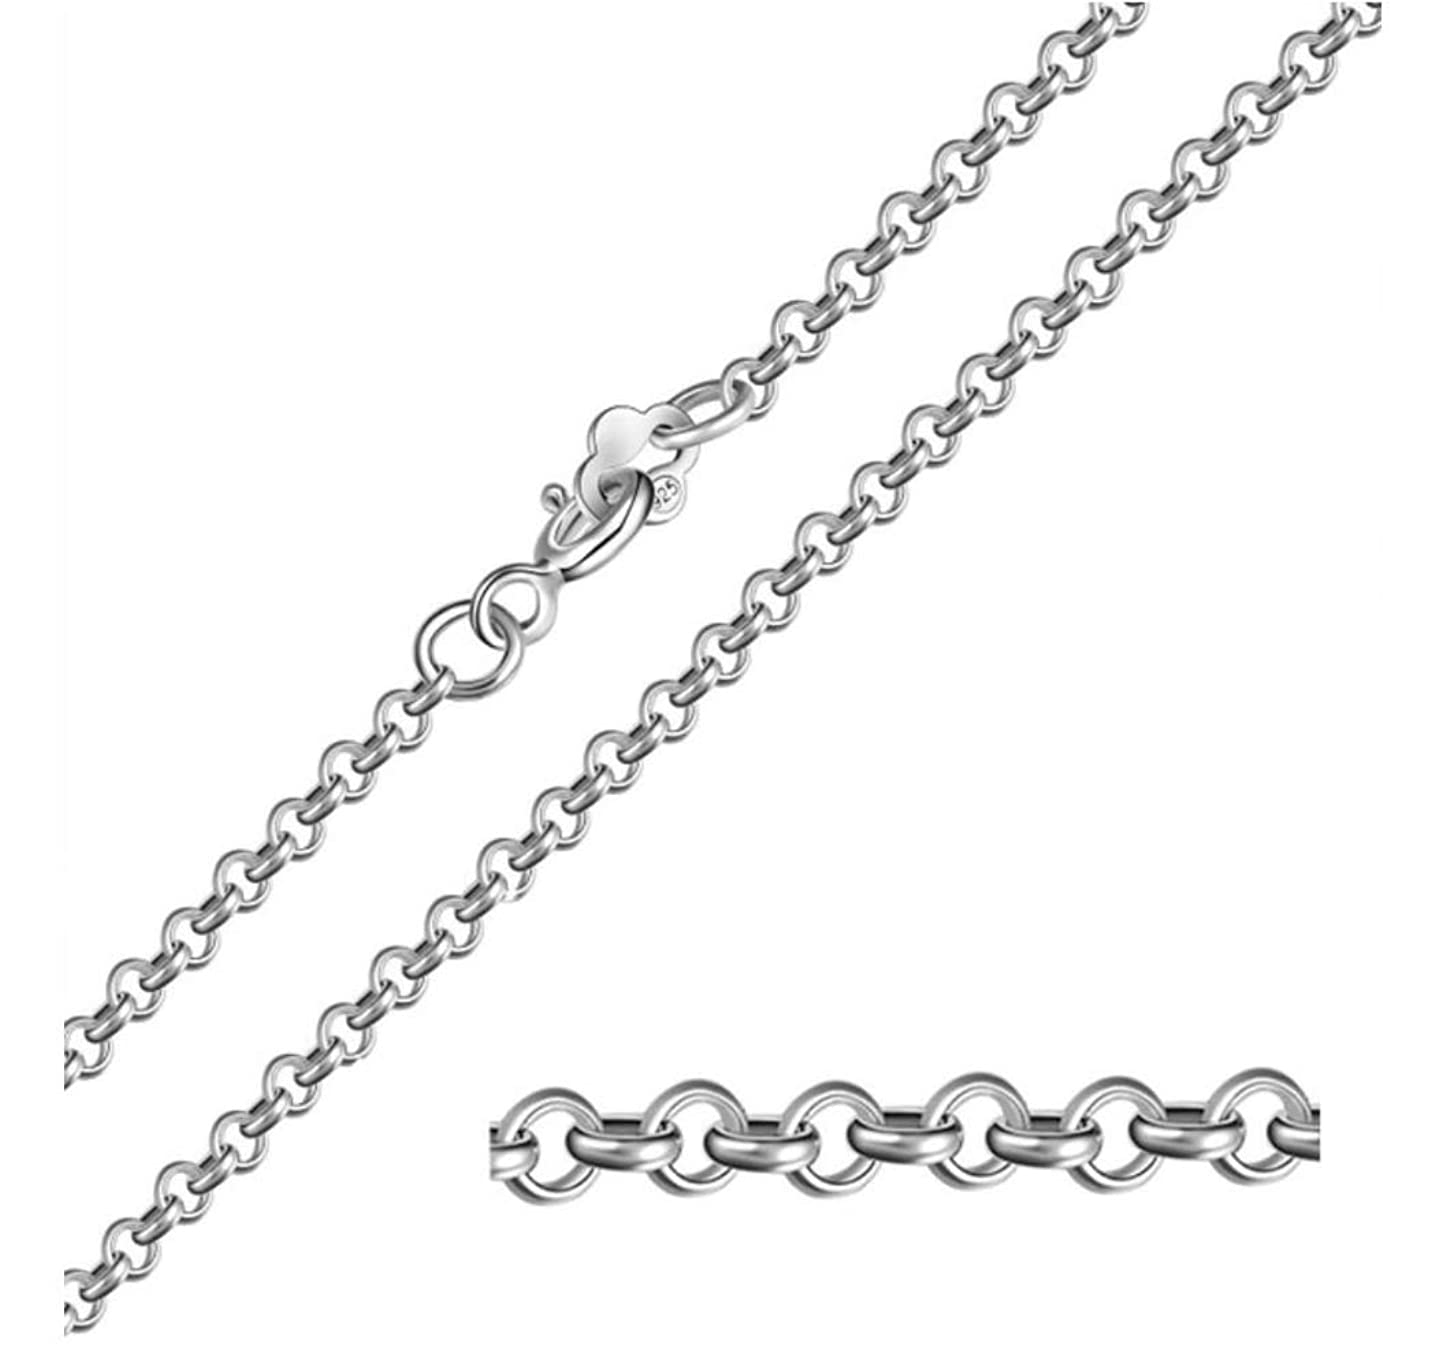 5pcs Top Quality 18 inch Sterling Silver Belcher Cable Chain Chain (1.5mm Width) for Women Men Girls Jewelry Making ss208